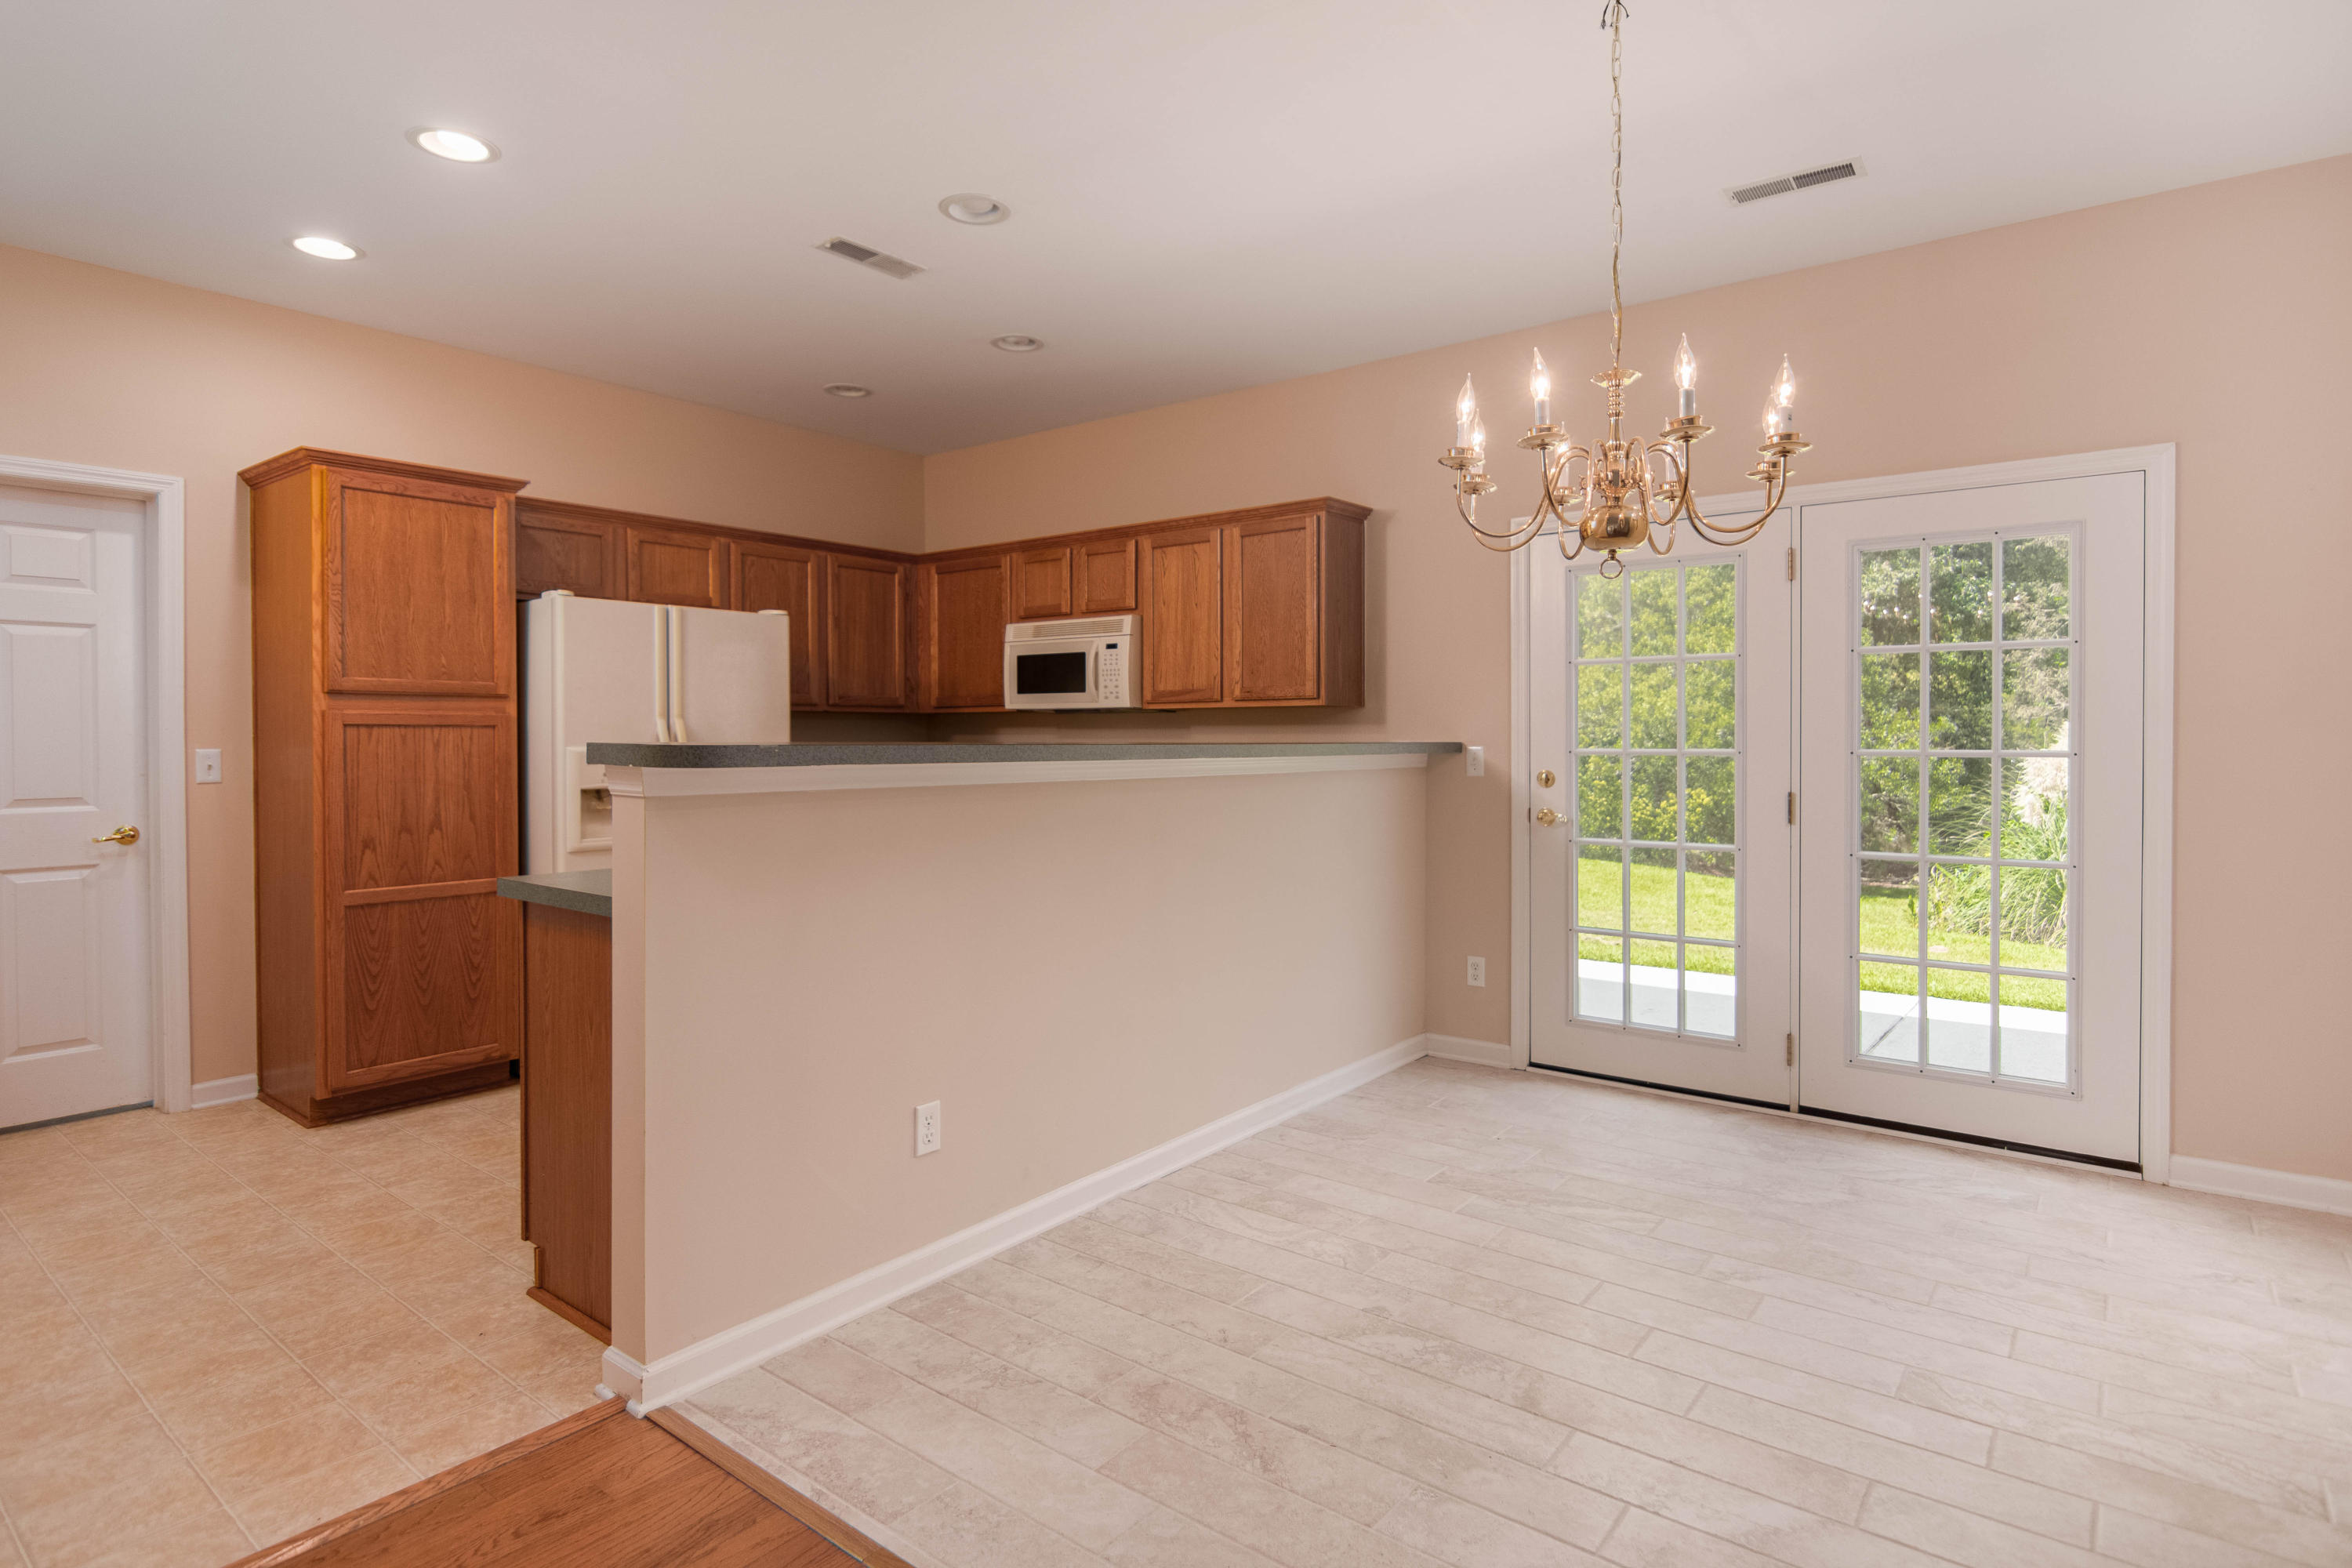 Coosaw Commons Homes For Sale - 8703 Grassy Oak, North Charleston, SC - 8